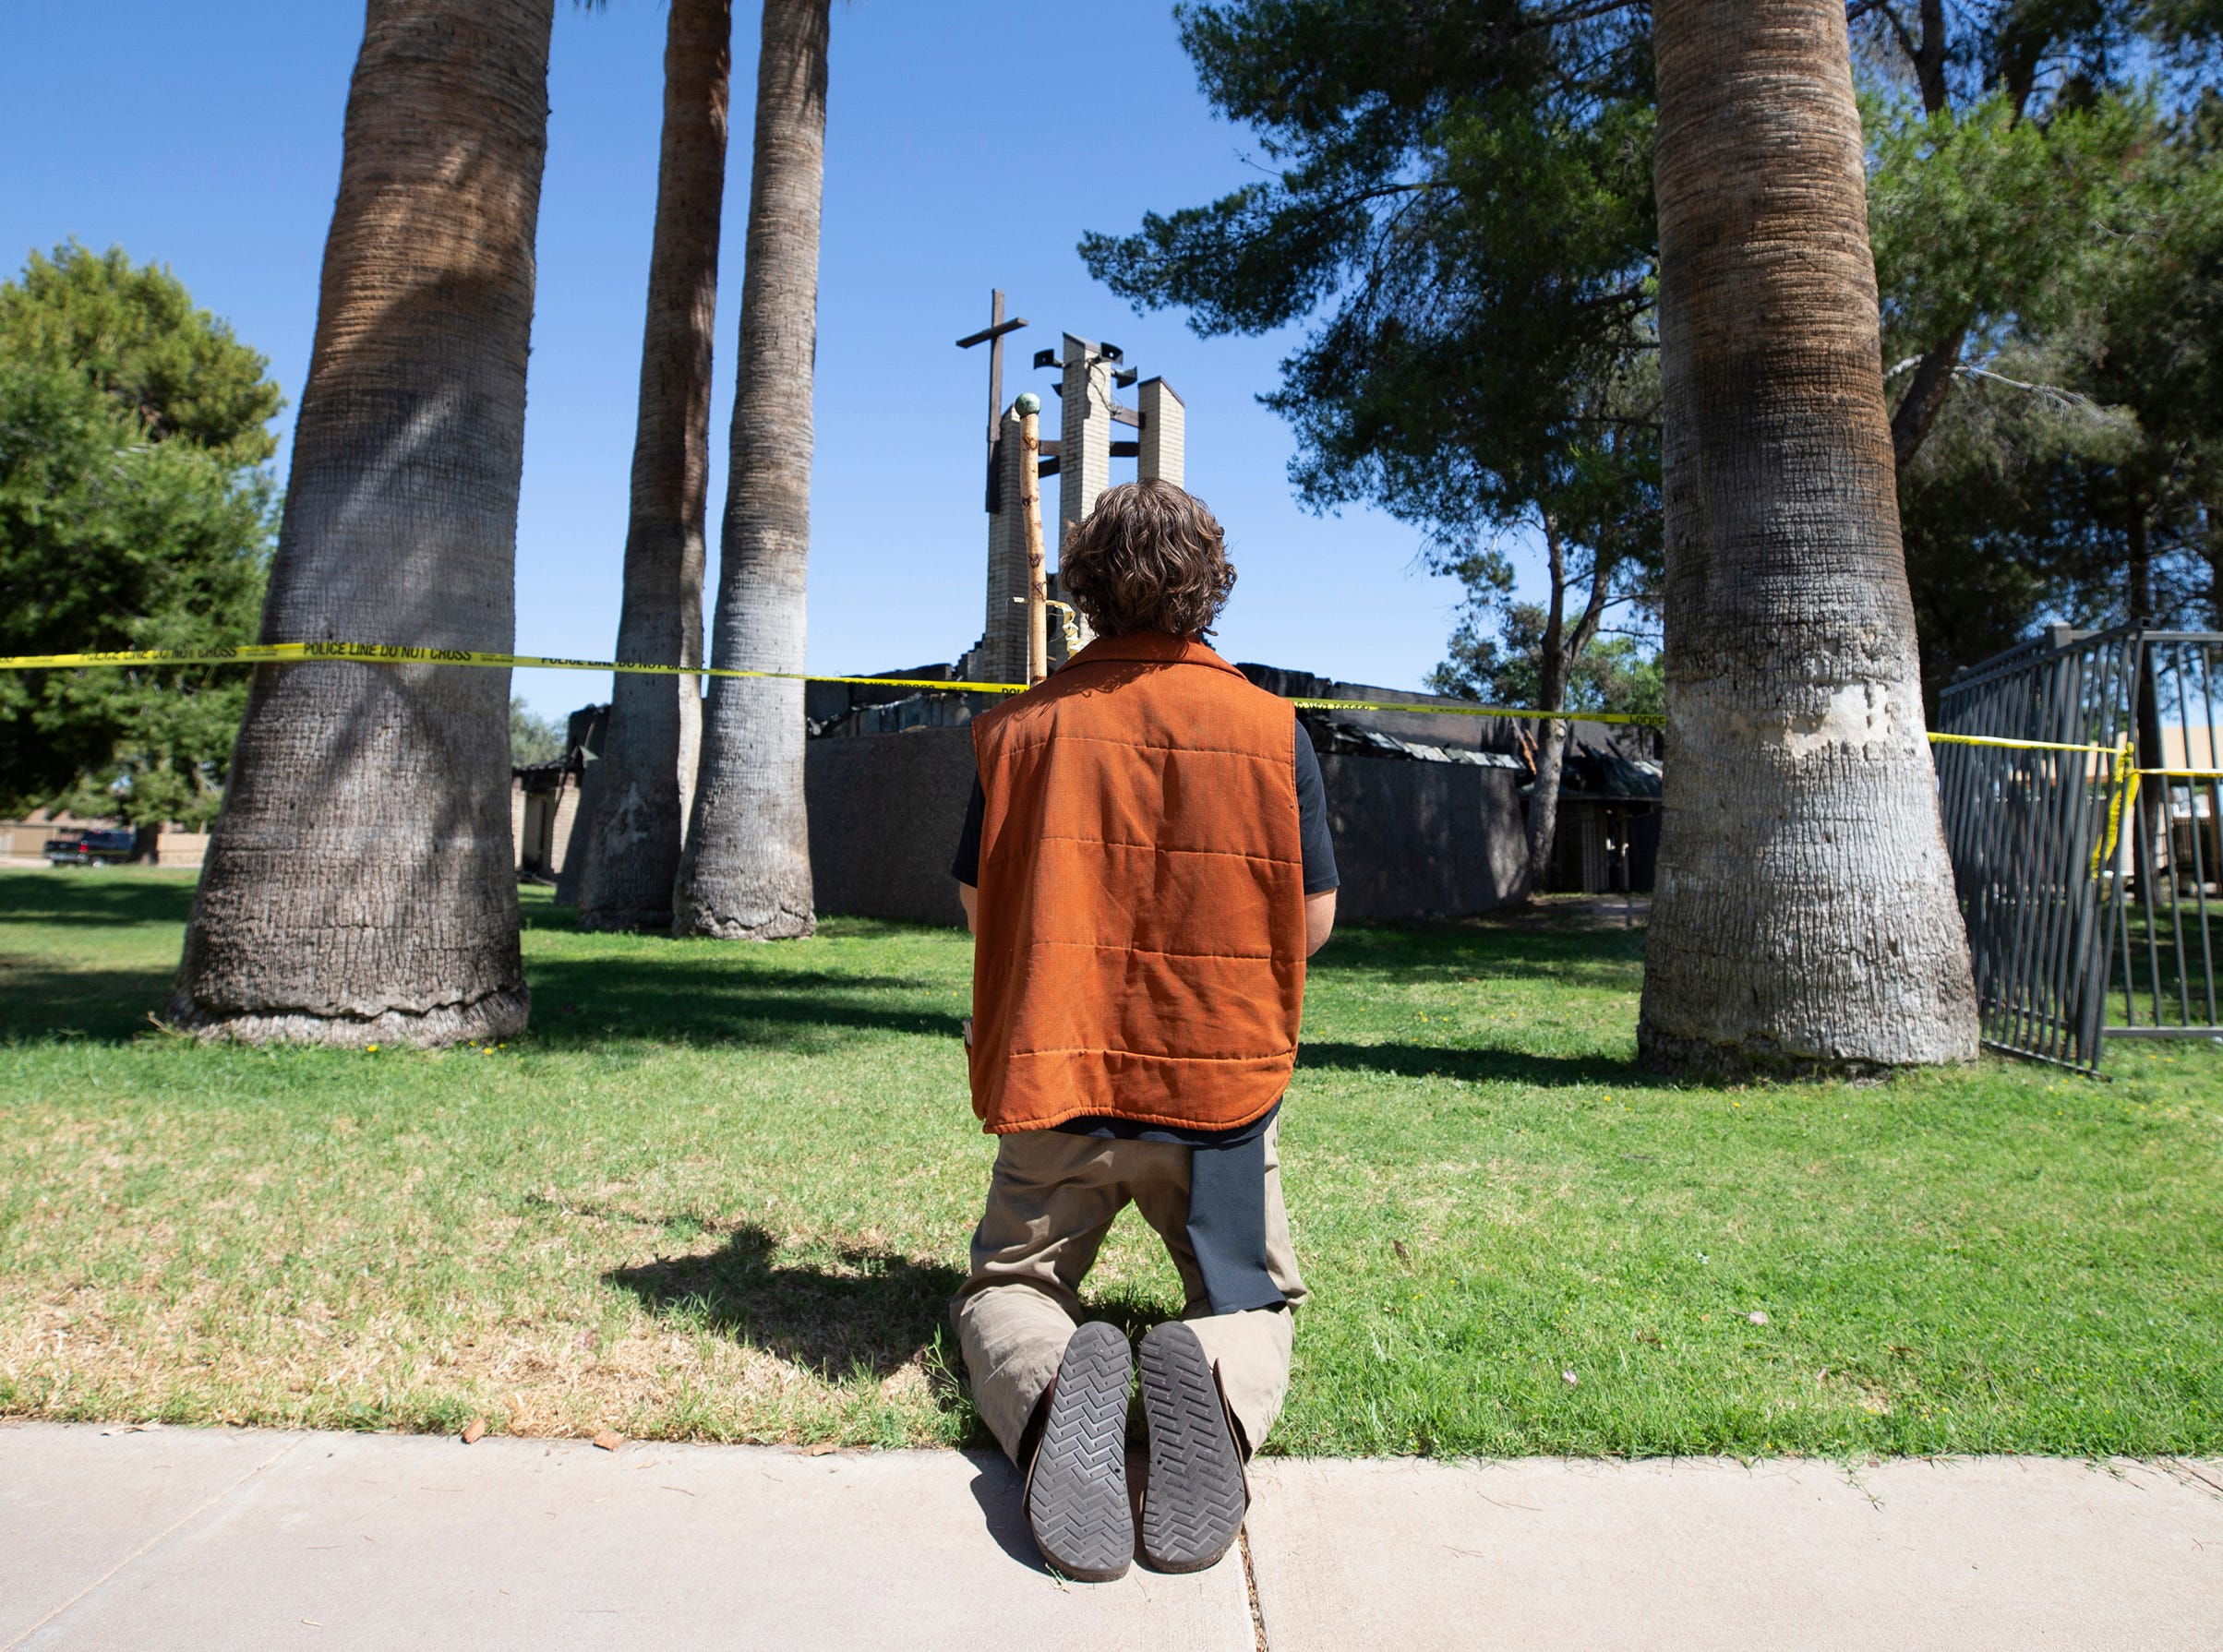 Joseph Pomarico of Phoenix prays outside St. Joseph Catholic Church in Phoenix on May 1, 2019, after a fire destroyed most of the church.